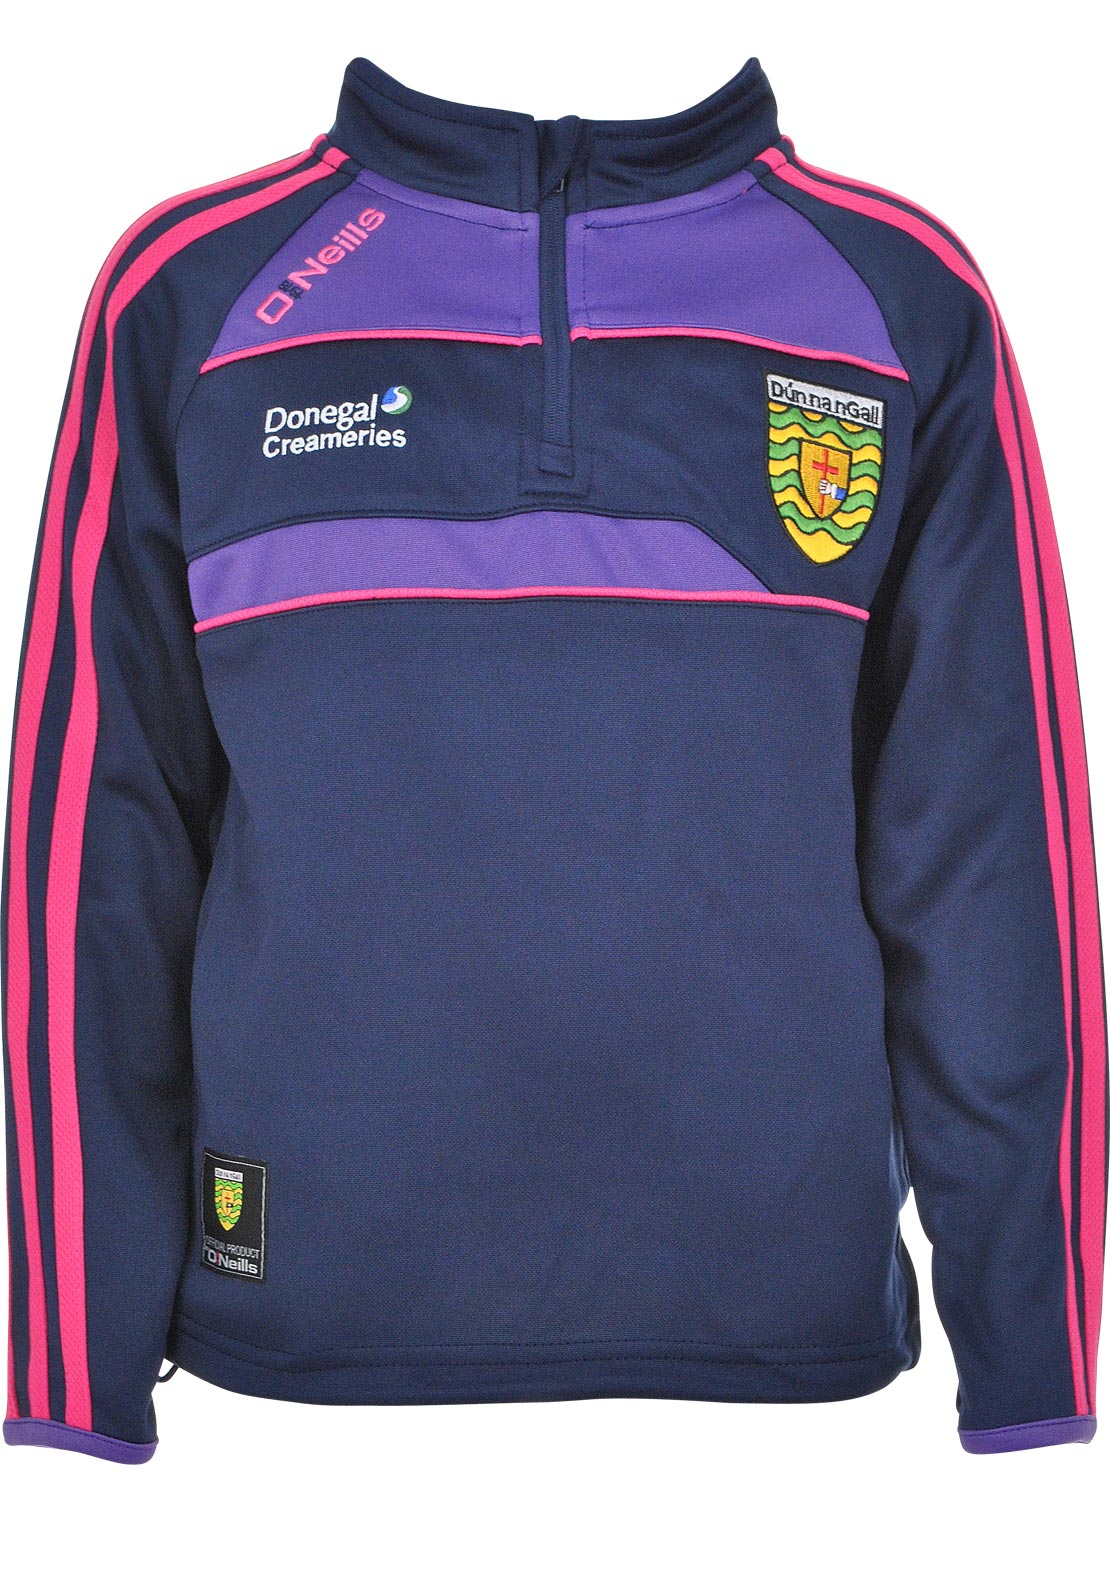 O'Neill's Girls GAA Shauna Donegal Training Top, Marine